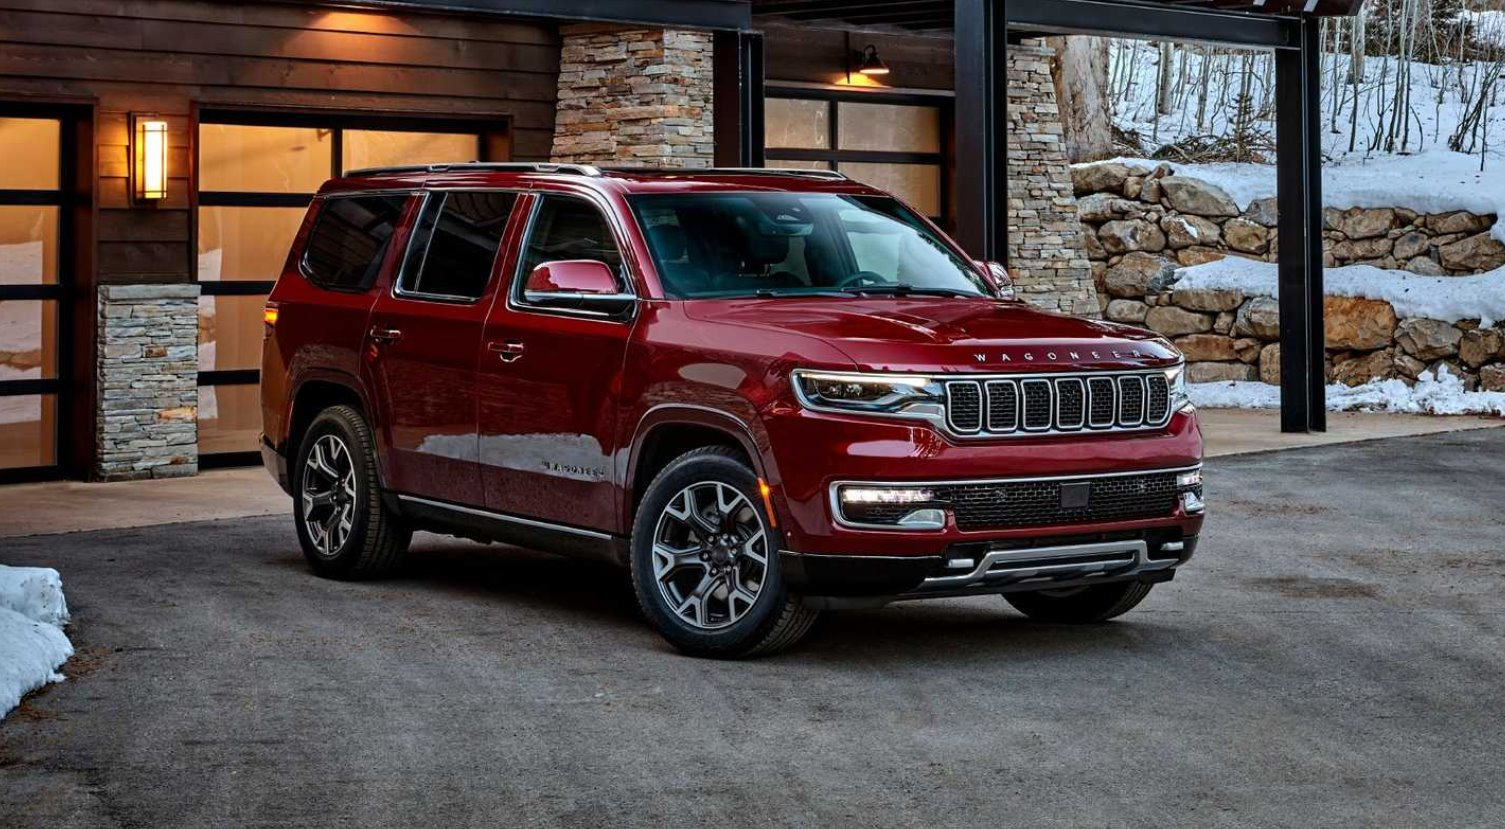 New 2022 Jeep Wagoneer Exterior